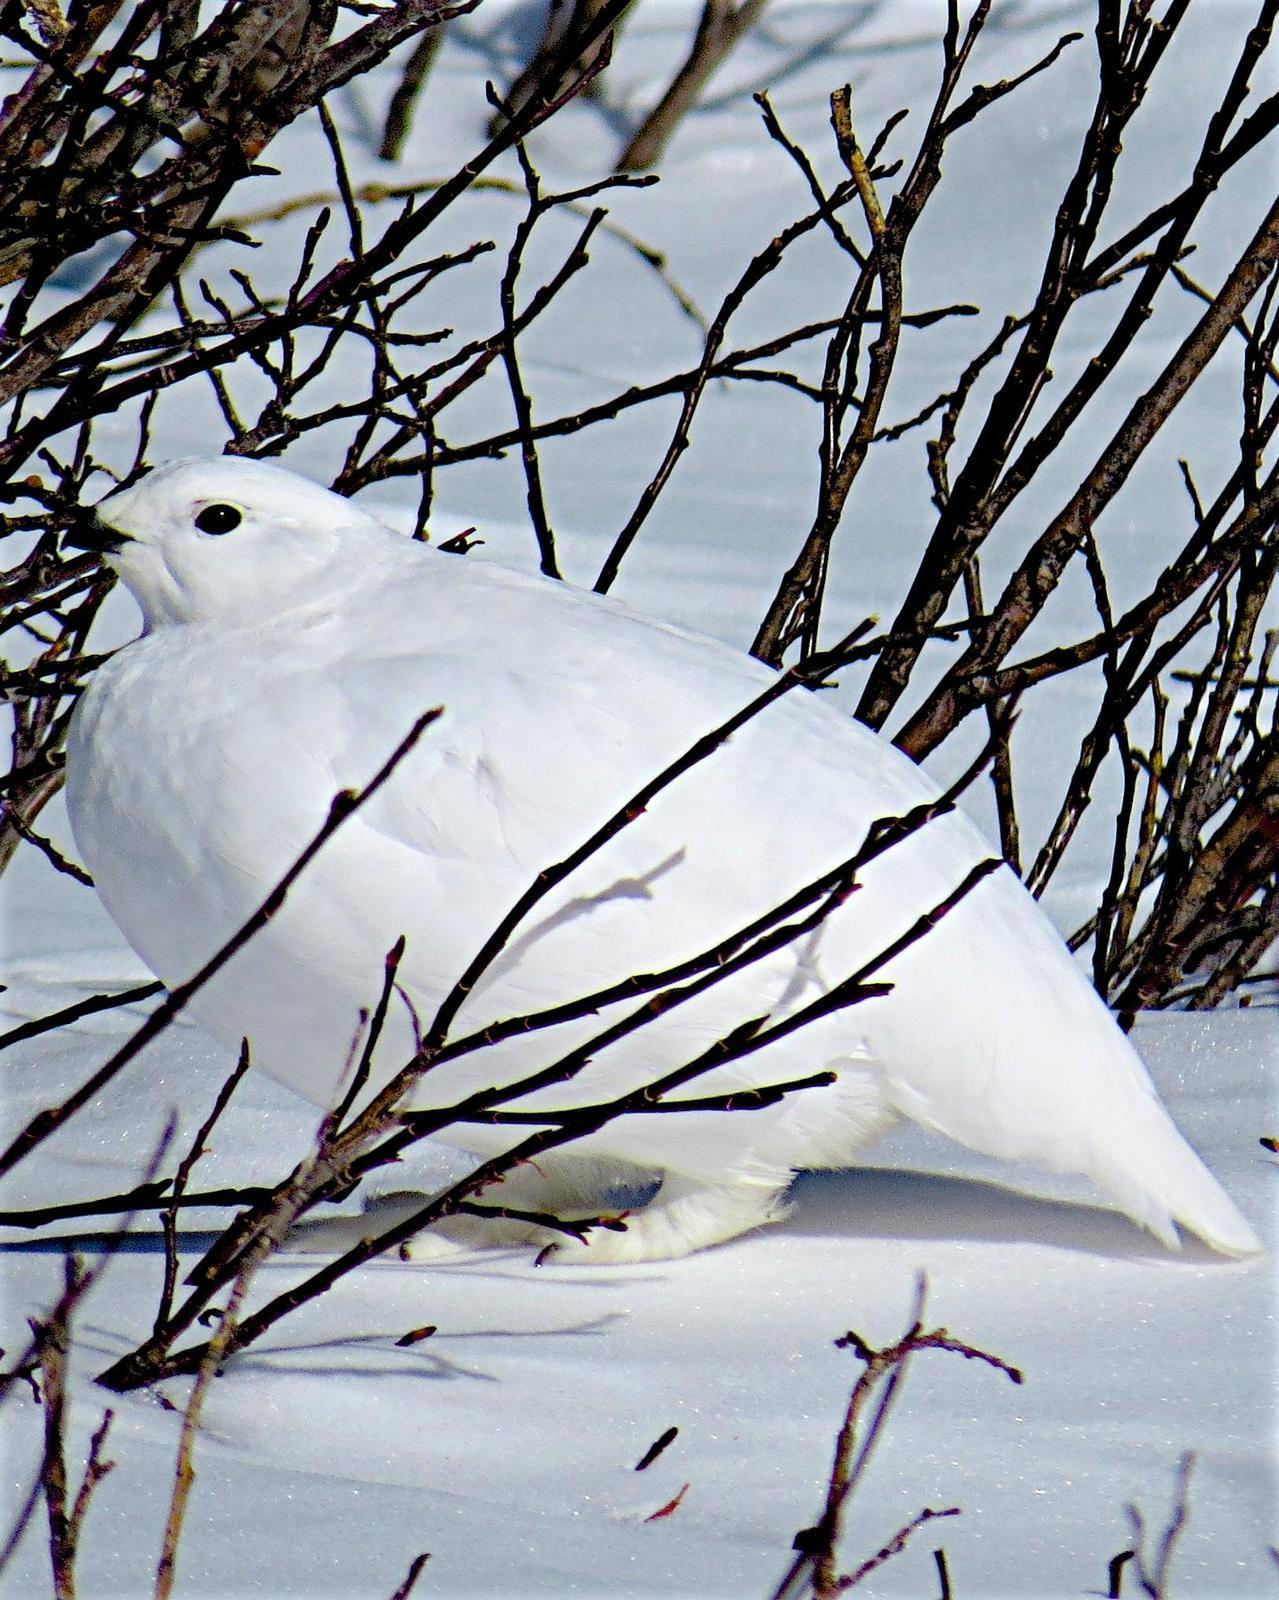 White-tailed Ptarmigan Photo by George Mayfield